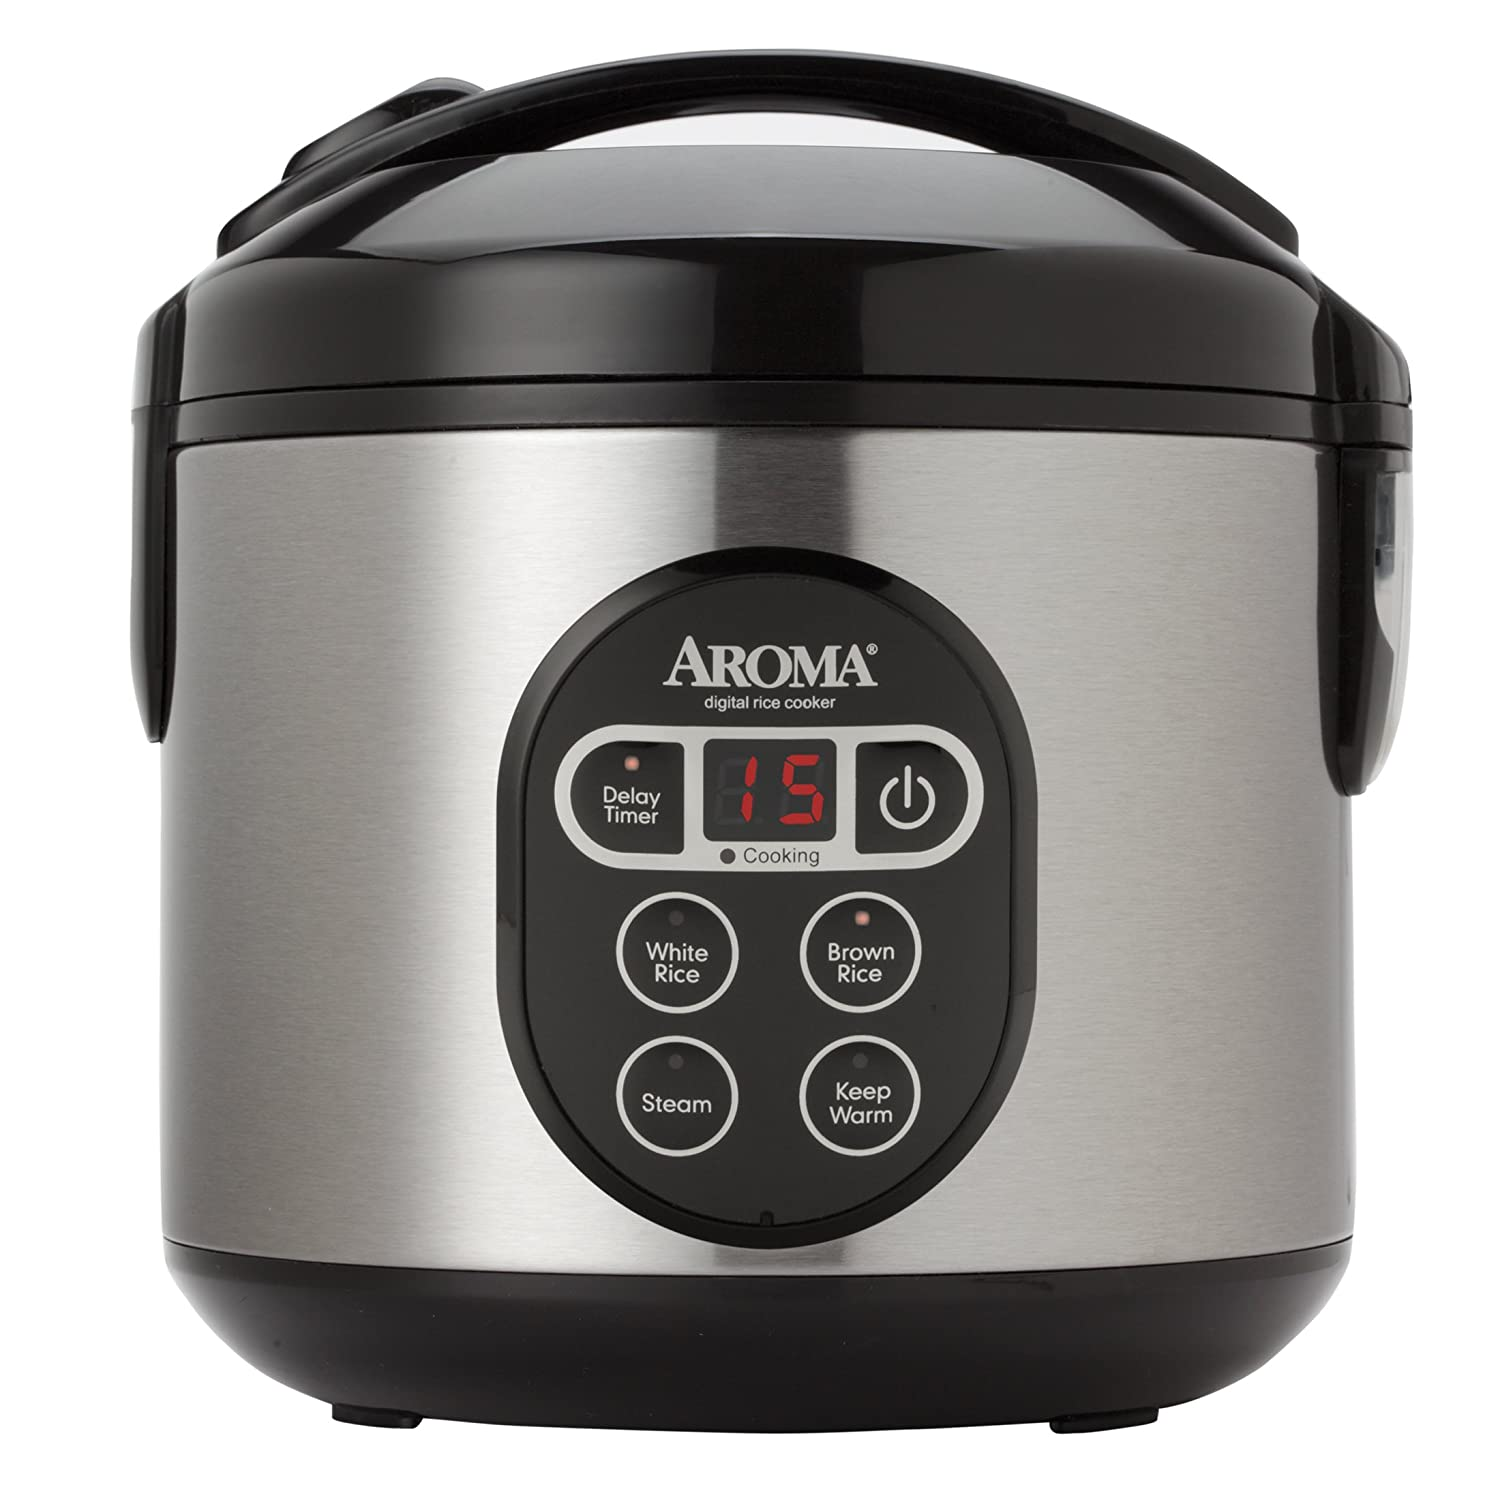 ... (Cooked) Digital Rice Cooker and Food Steamer Stainless Steel Black